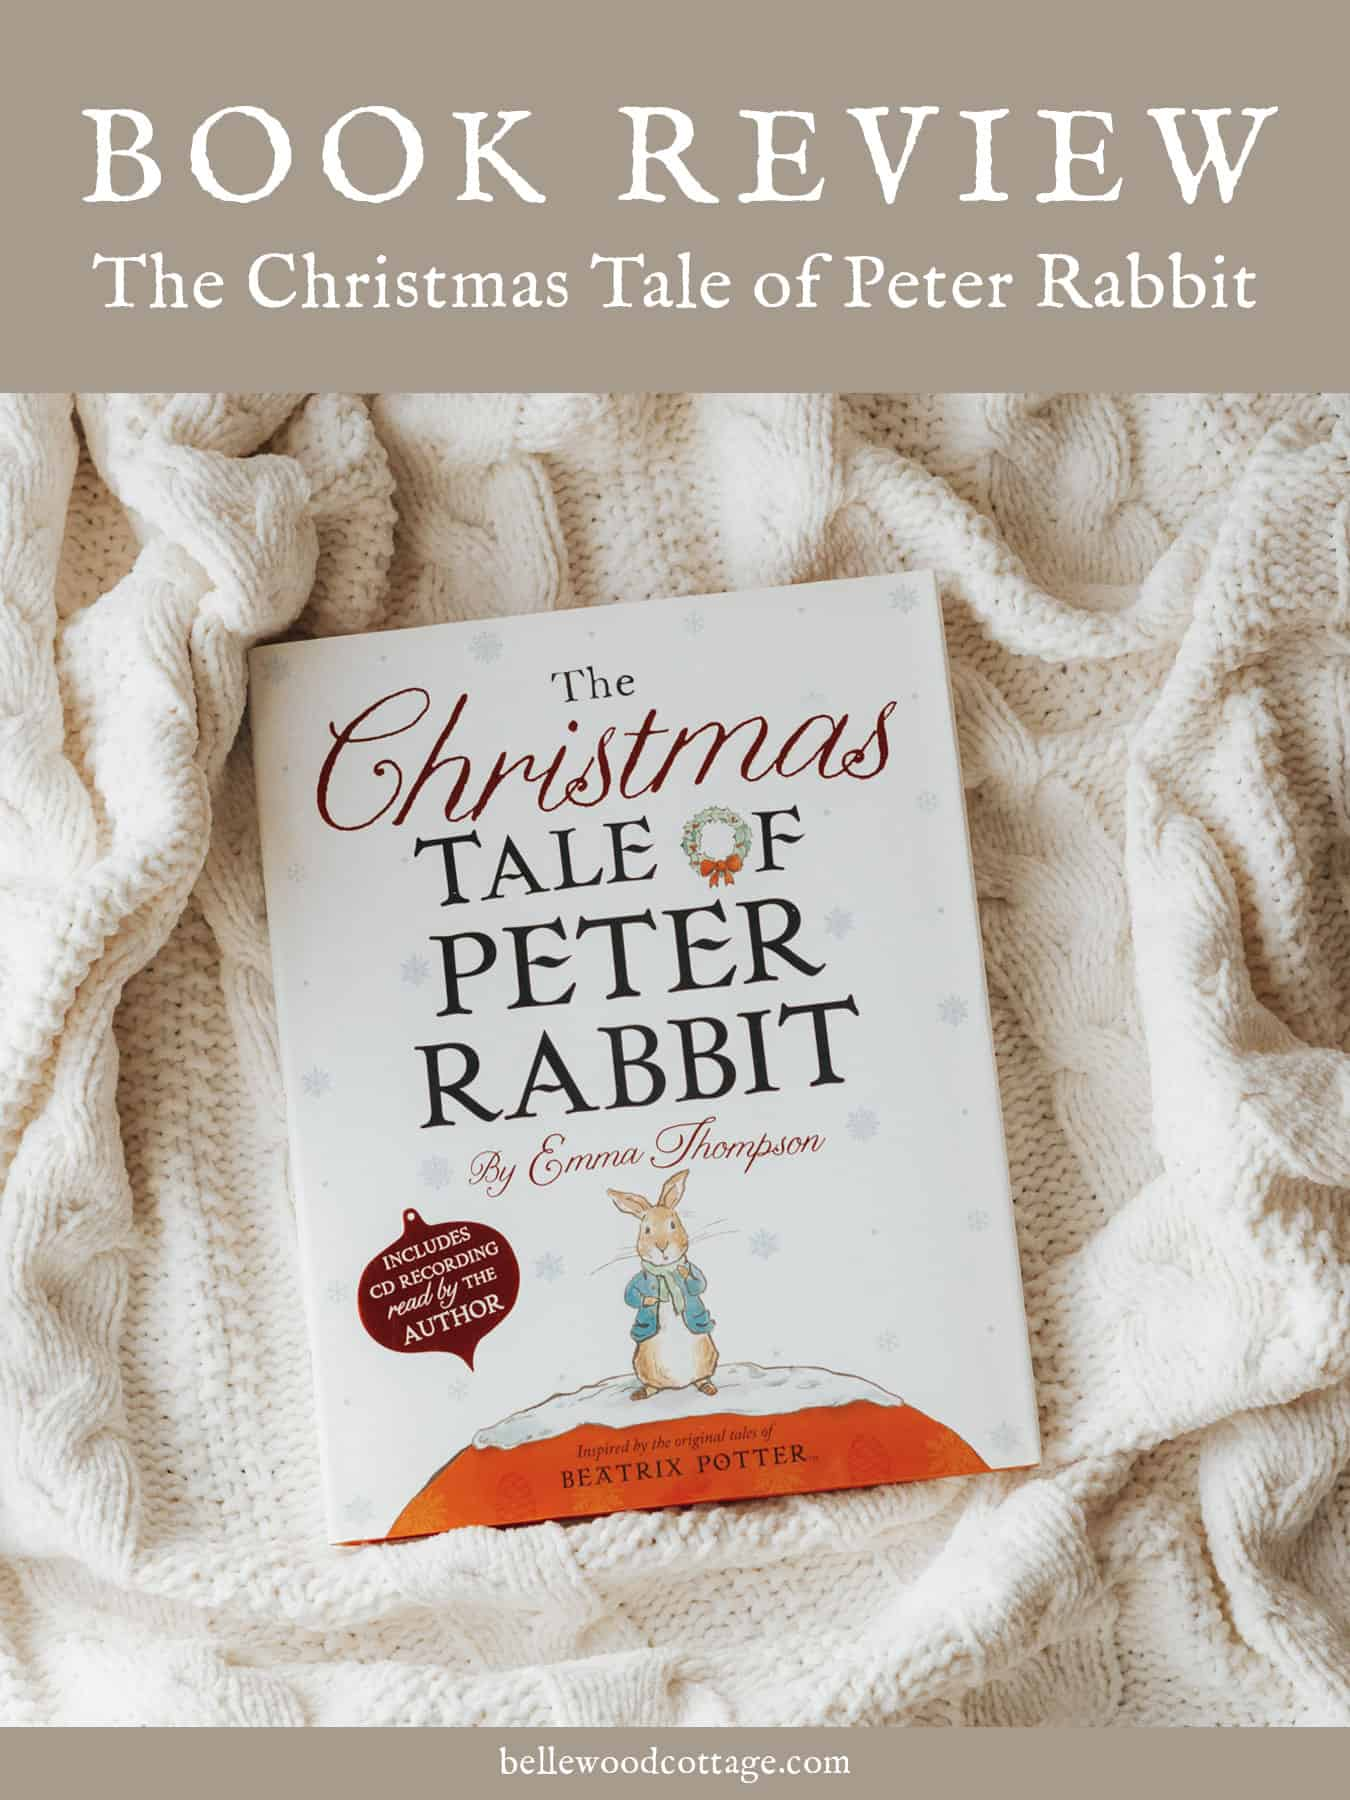 A book review image of the cover of The Christmas Tale of Peter Rabbit, a book by Emma Thompson.